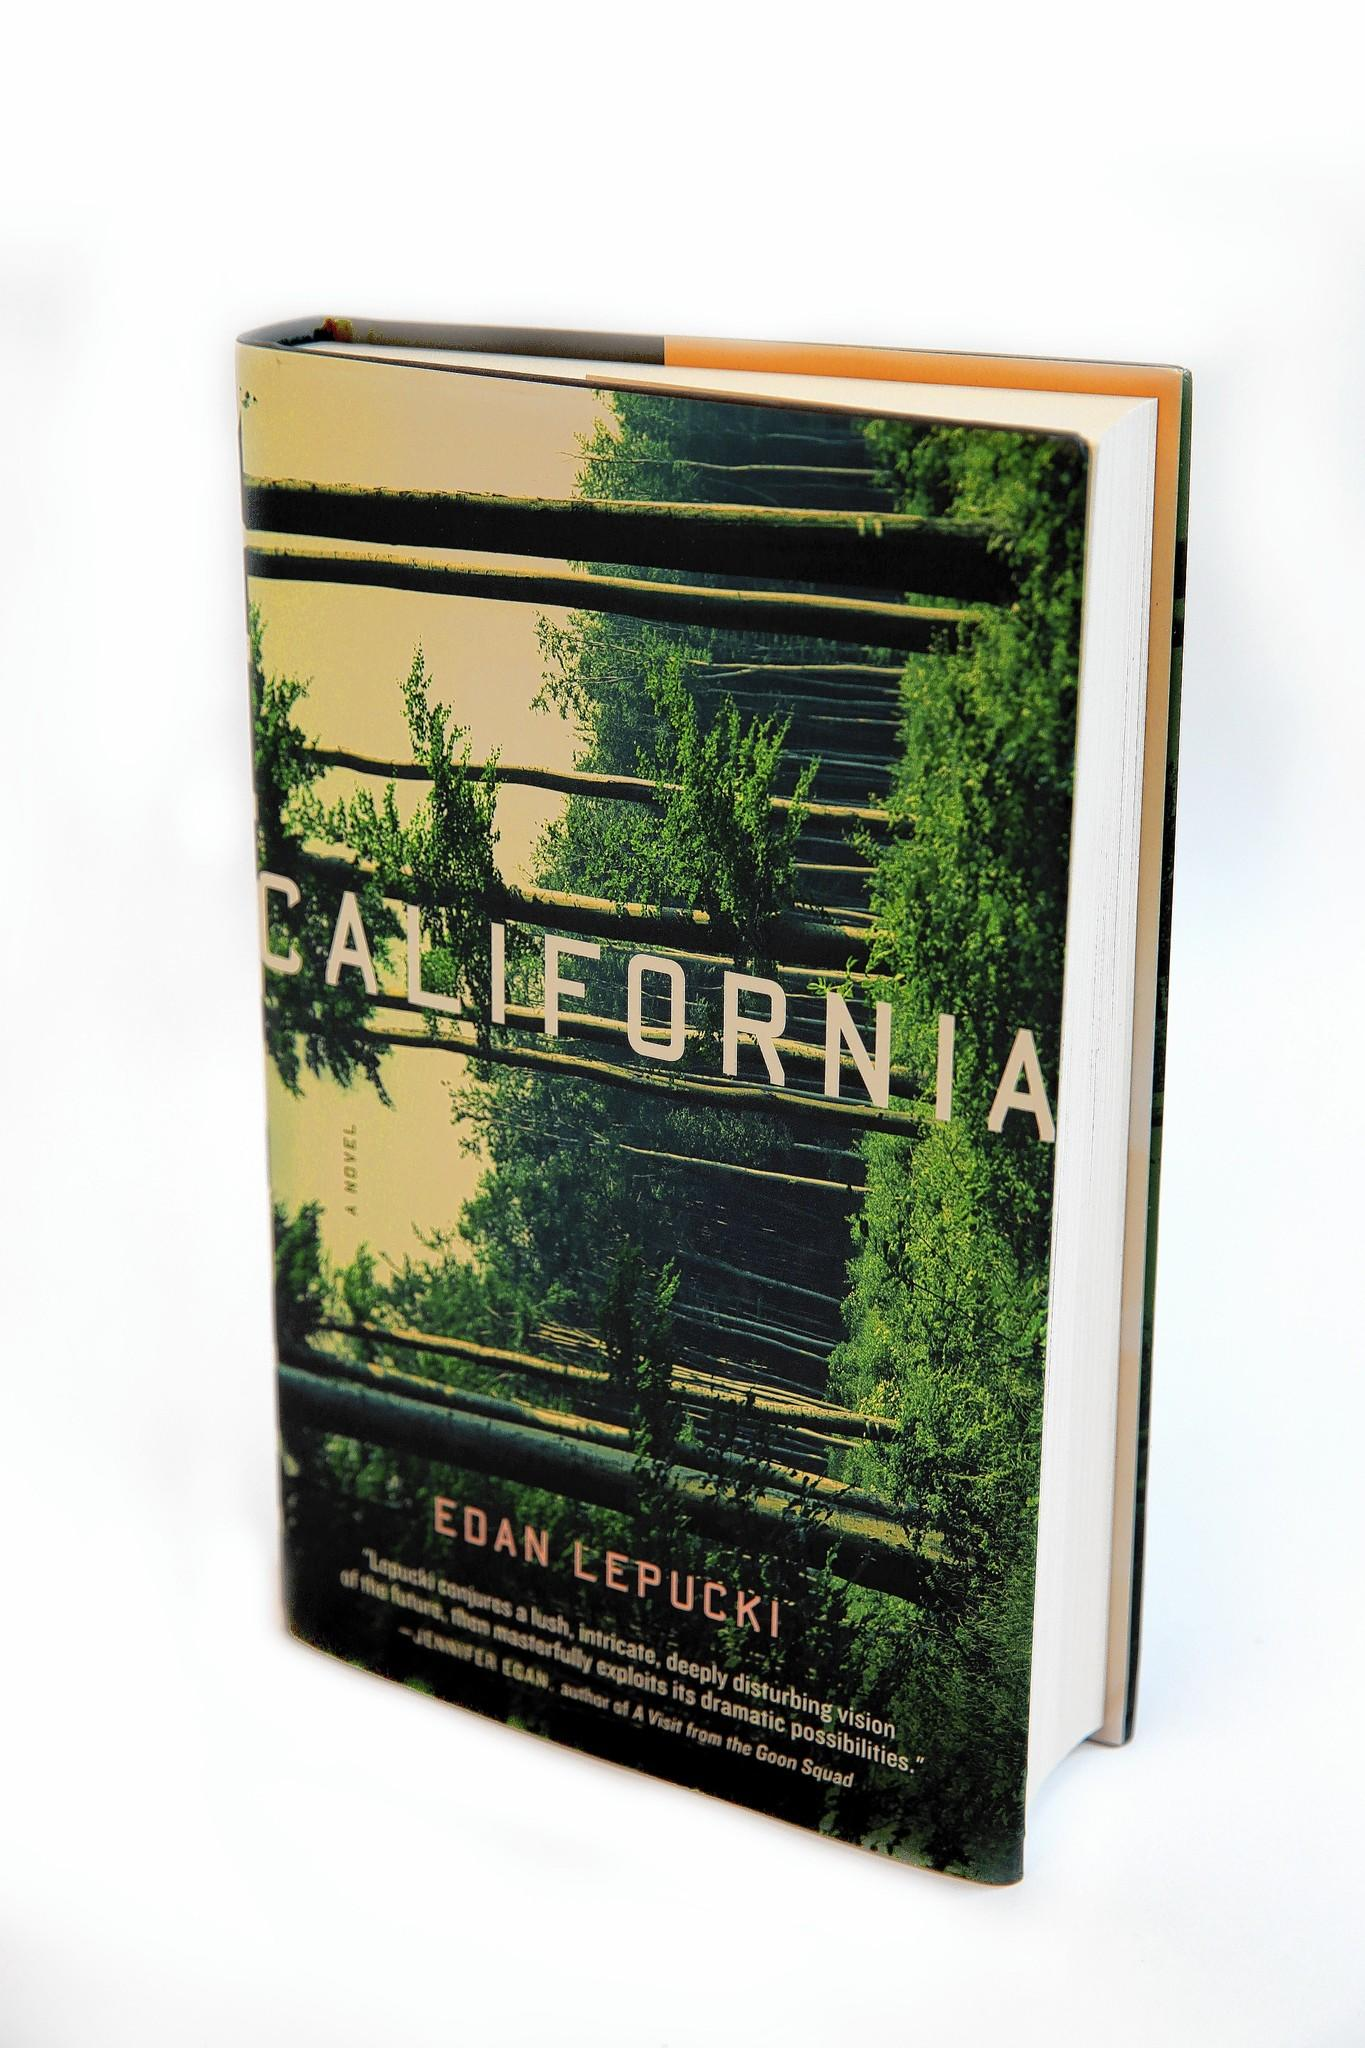 """Edan Lepucki's debut novel, """"California,"""" presents a sinister, post-apocalyptic Golden State in which its protagonists live in a forest outside of Los Angeles."""